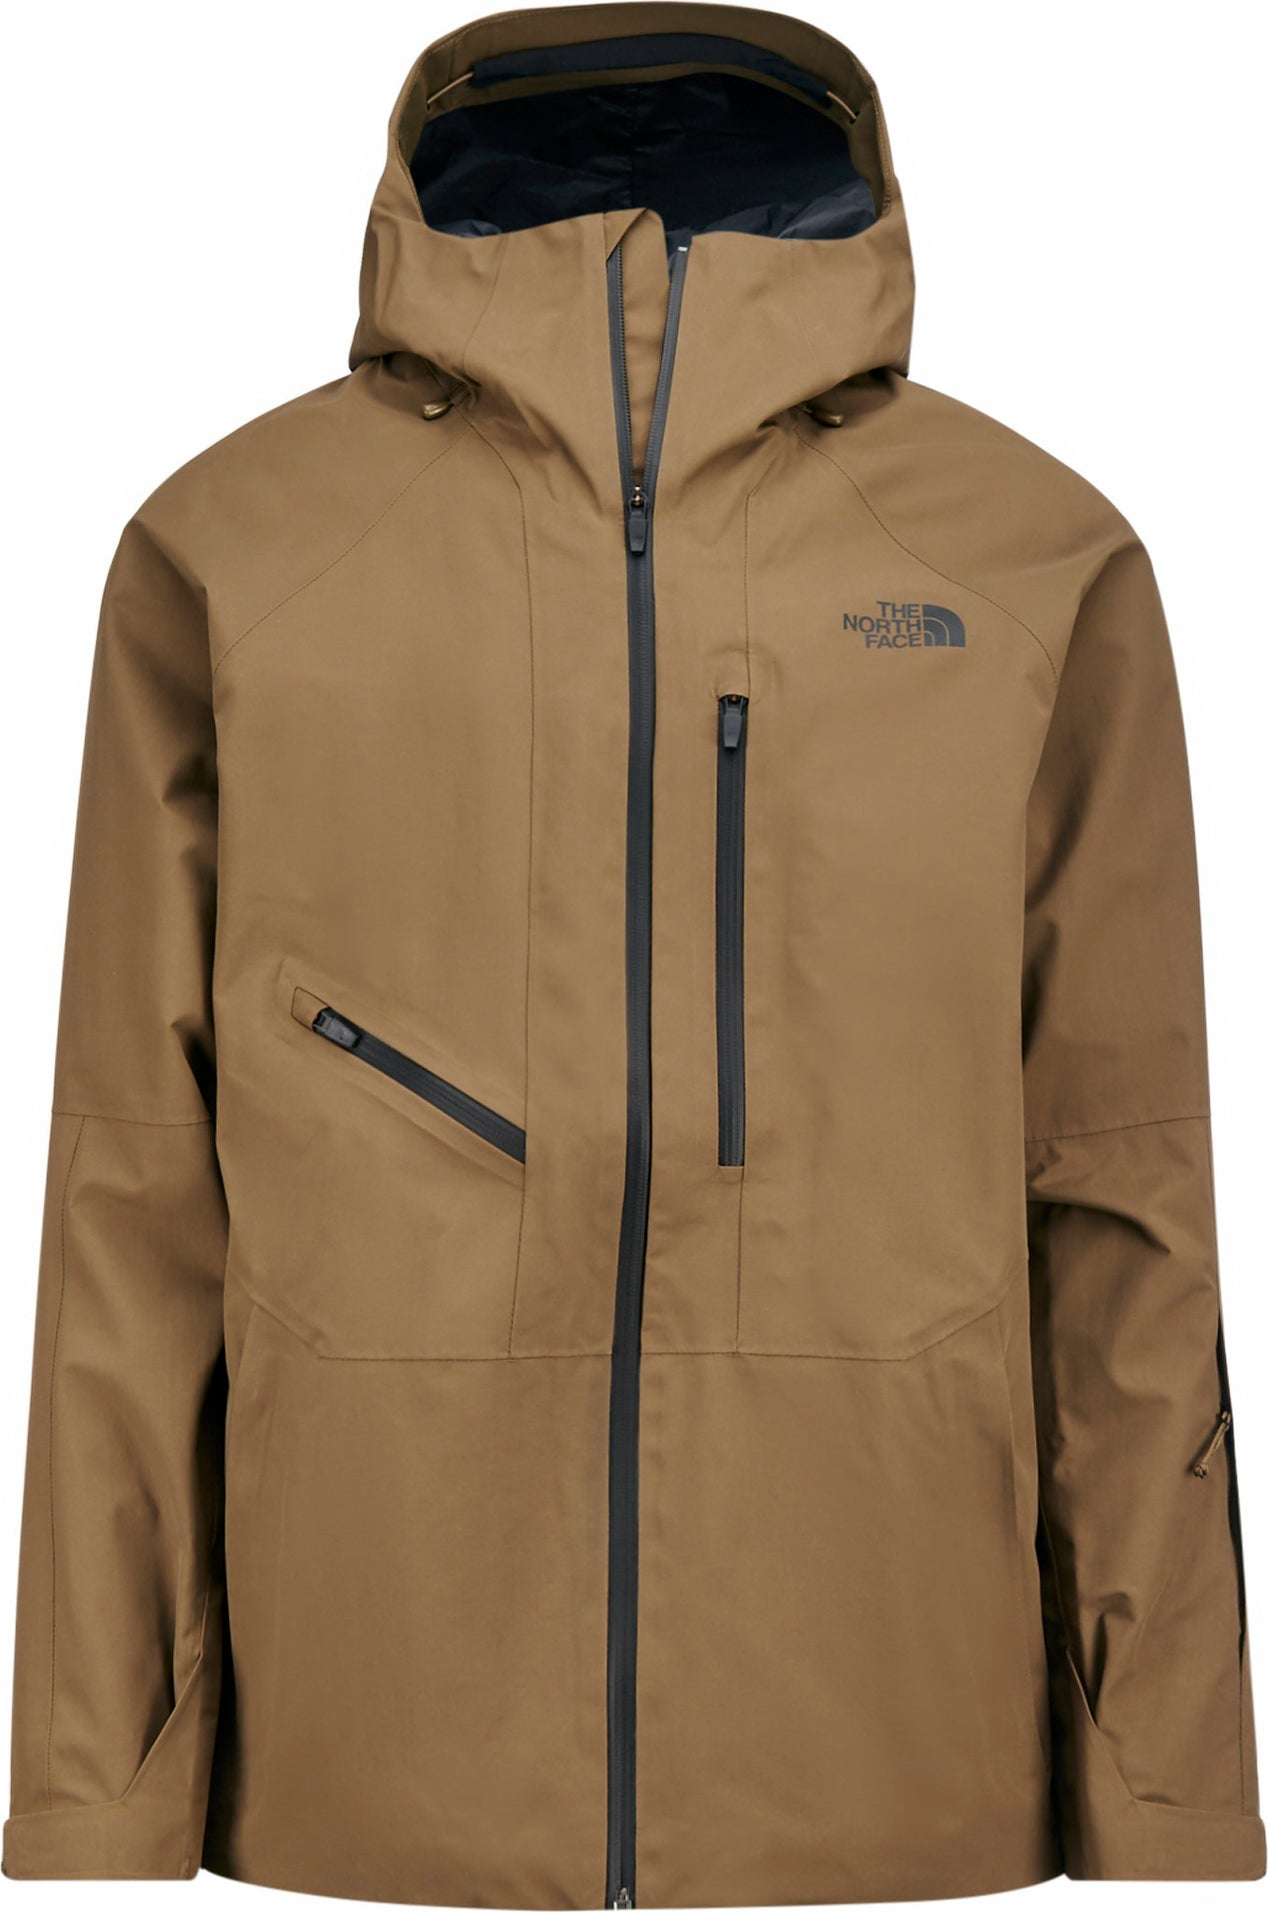 0b3d71ca0 The North Face Men's Powderflo Jacket